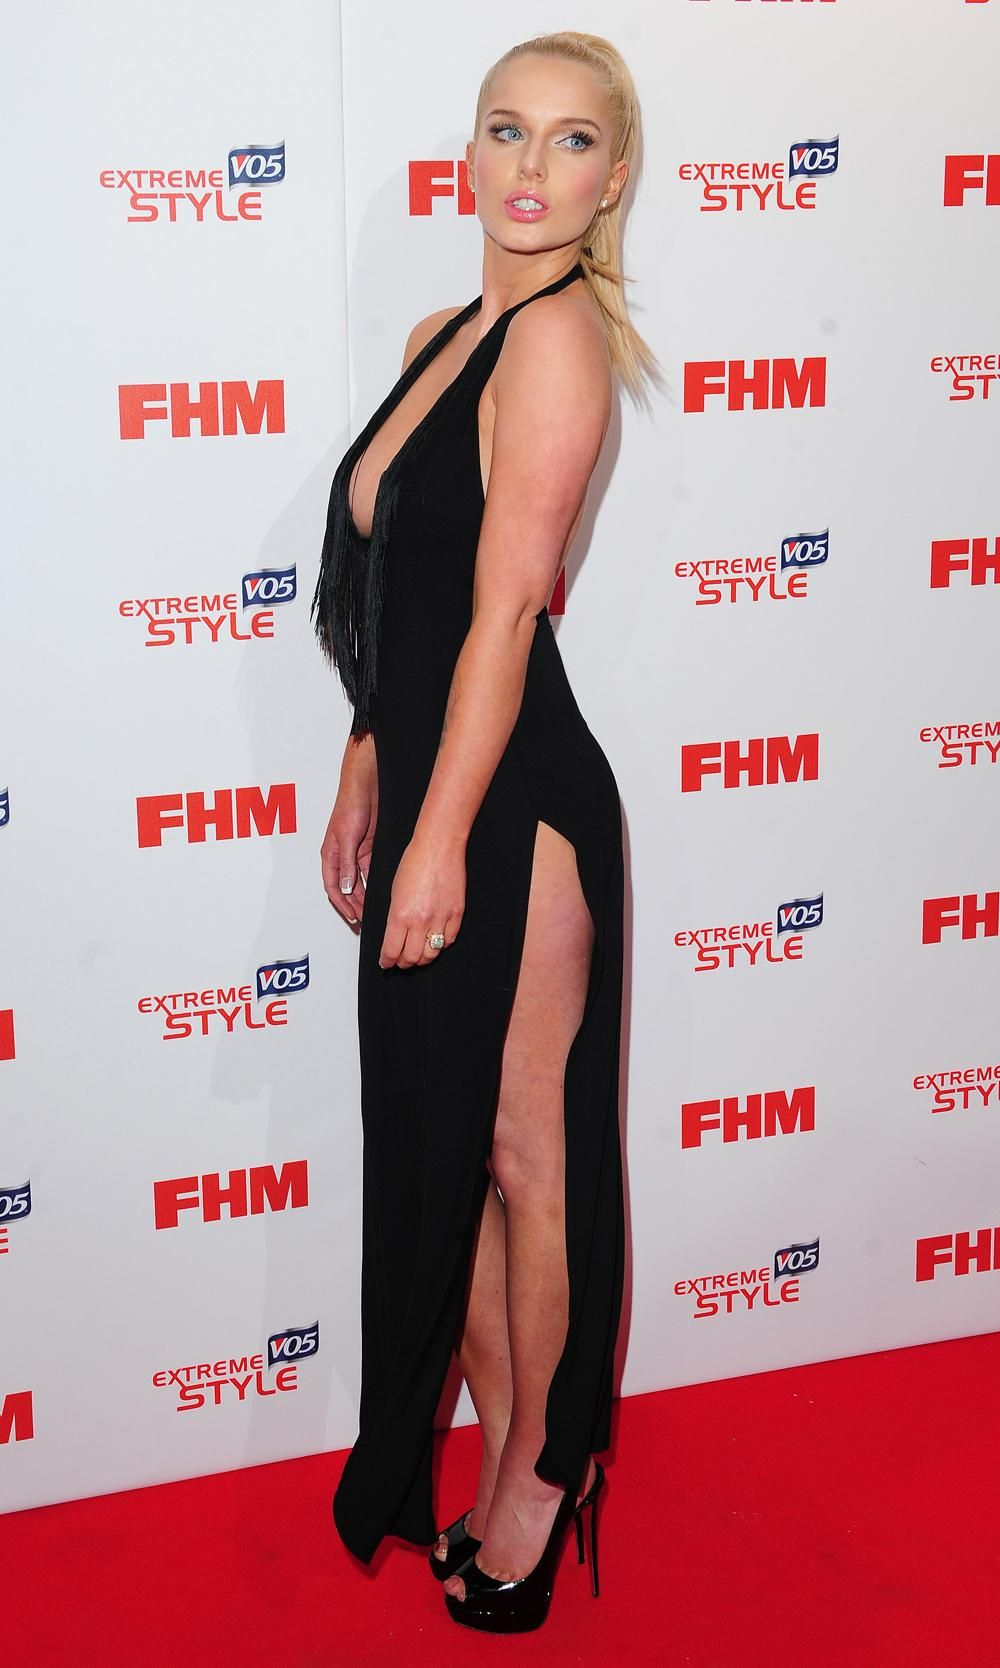 The Woman The Sun Page 3 >> Helen Flanagan Left Little To The Imagination As She